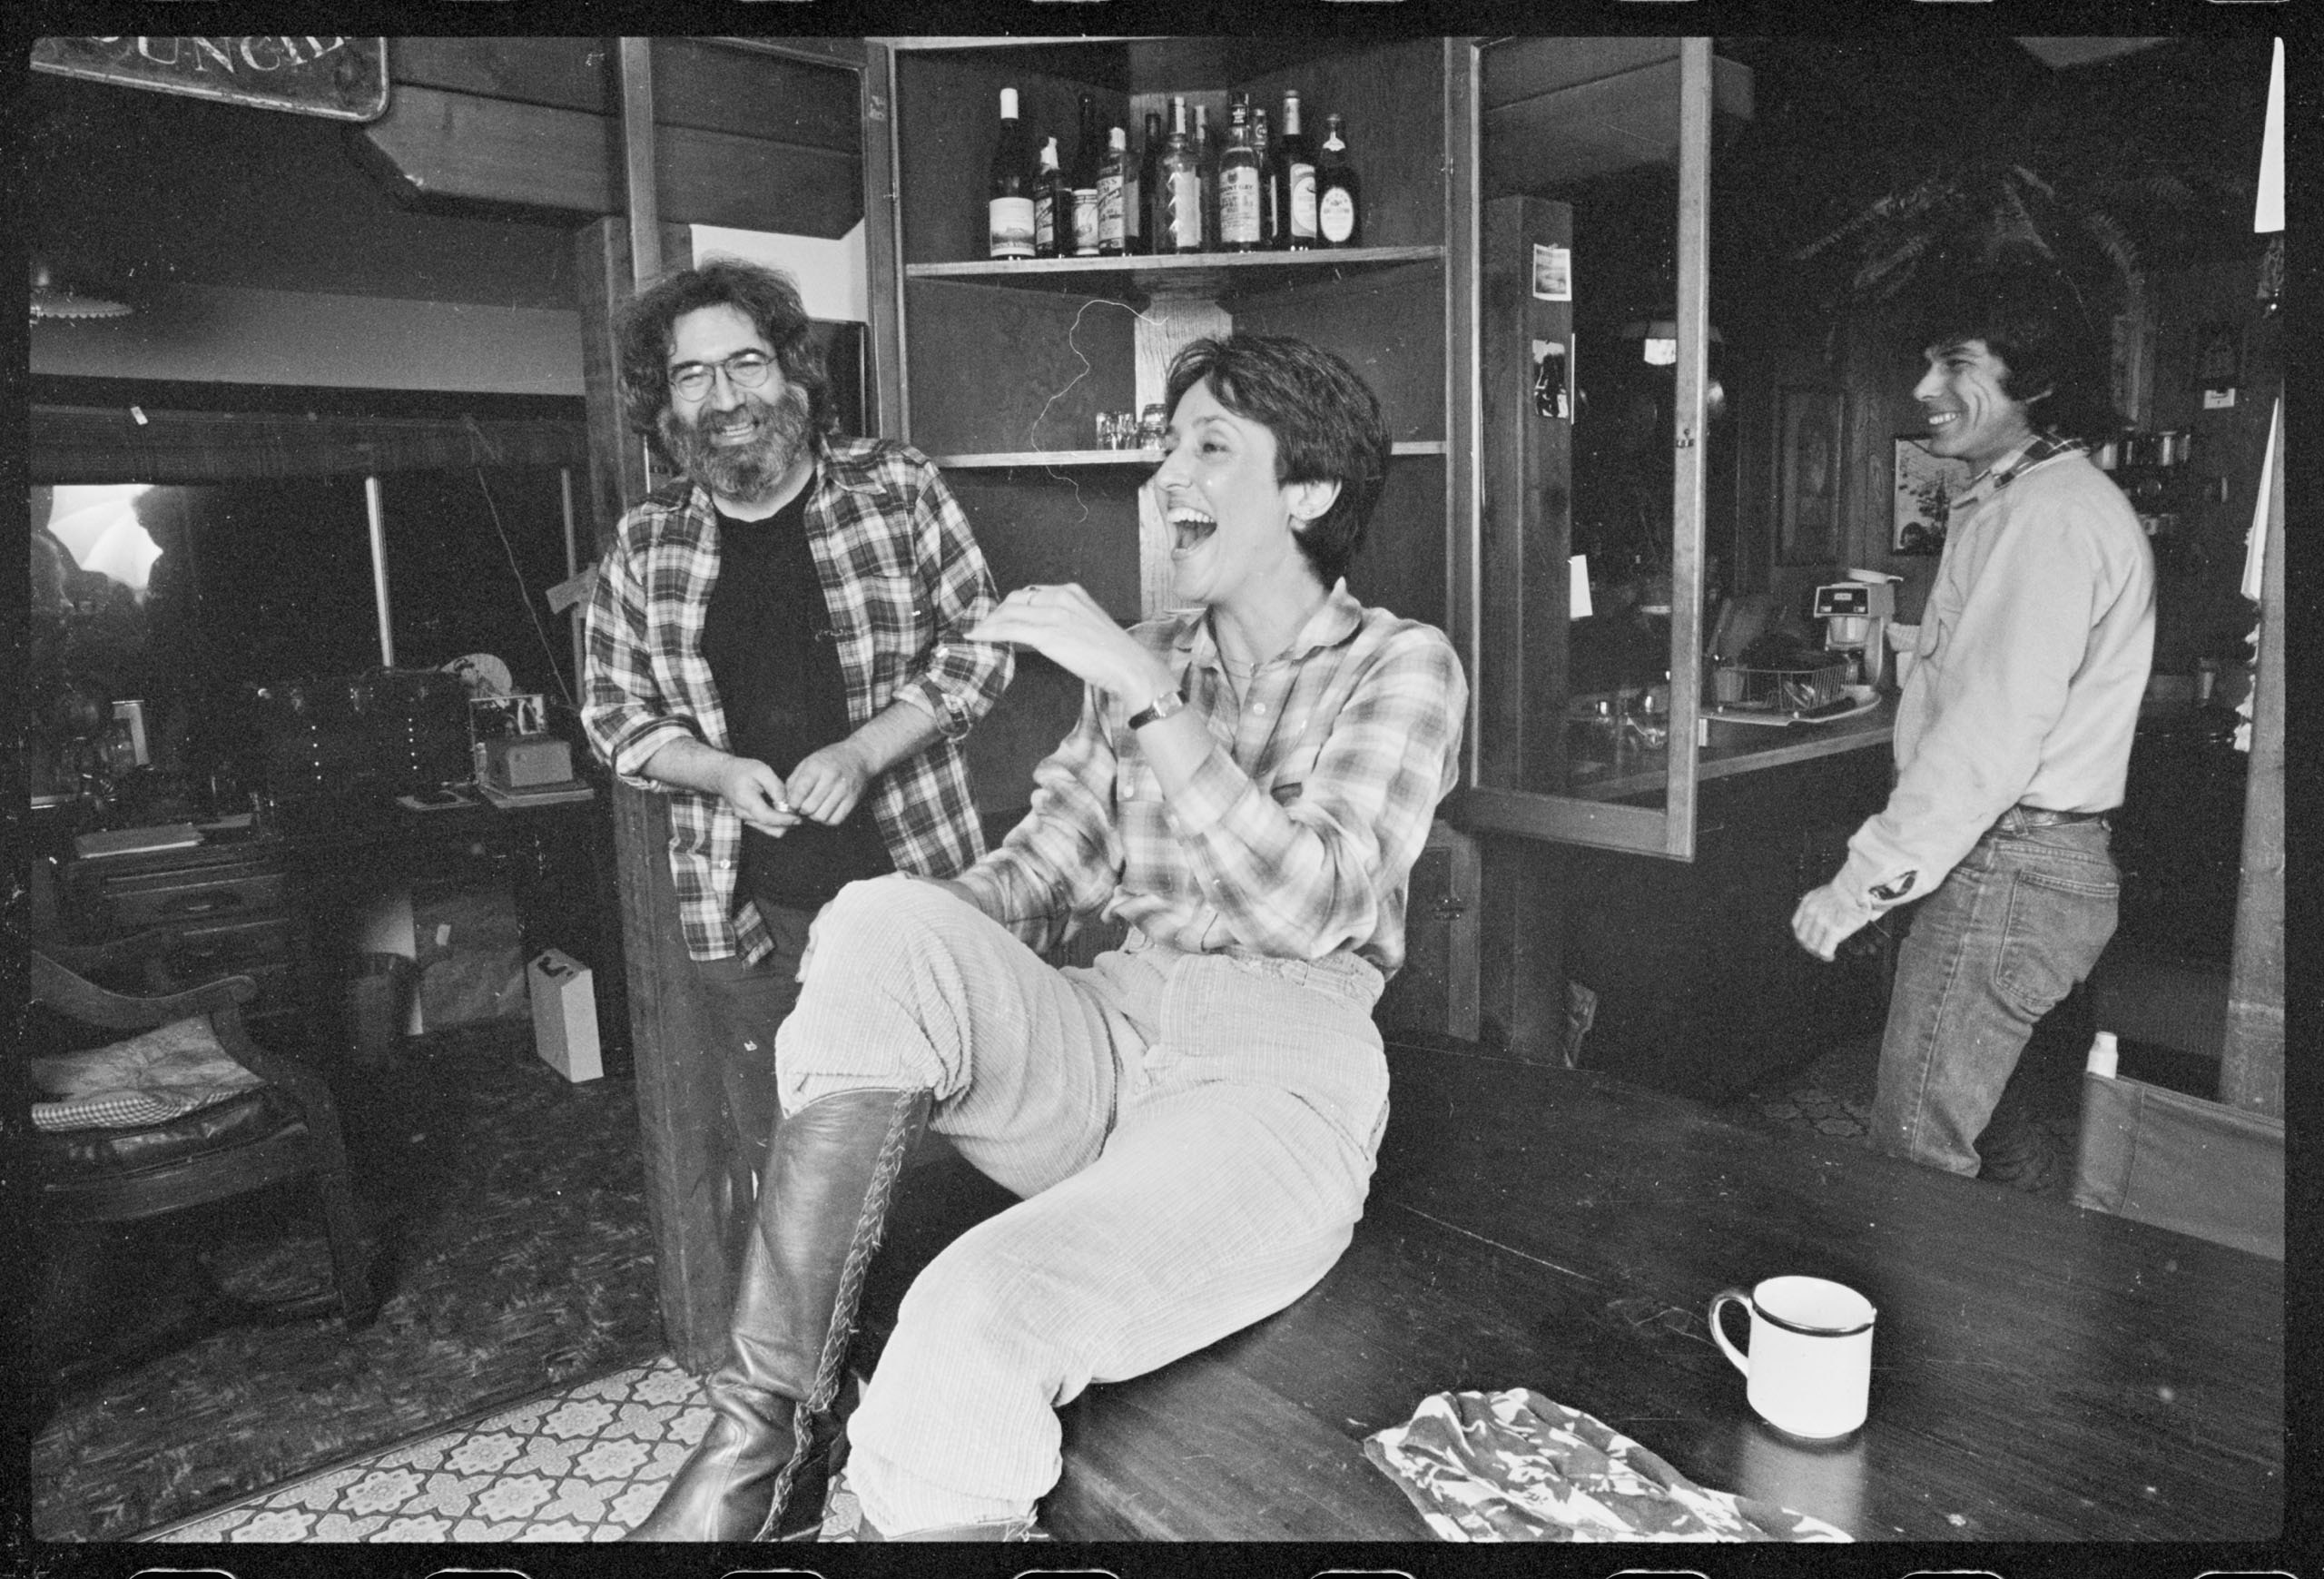 November 1981, San Rafael, California, USA --- Jerry Garcia, singer and guitarist for the Grateful Dead, poses for pictures at his home with folk singer Joan Baez and Grateful Dead drummer Mickey Hart